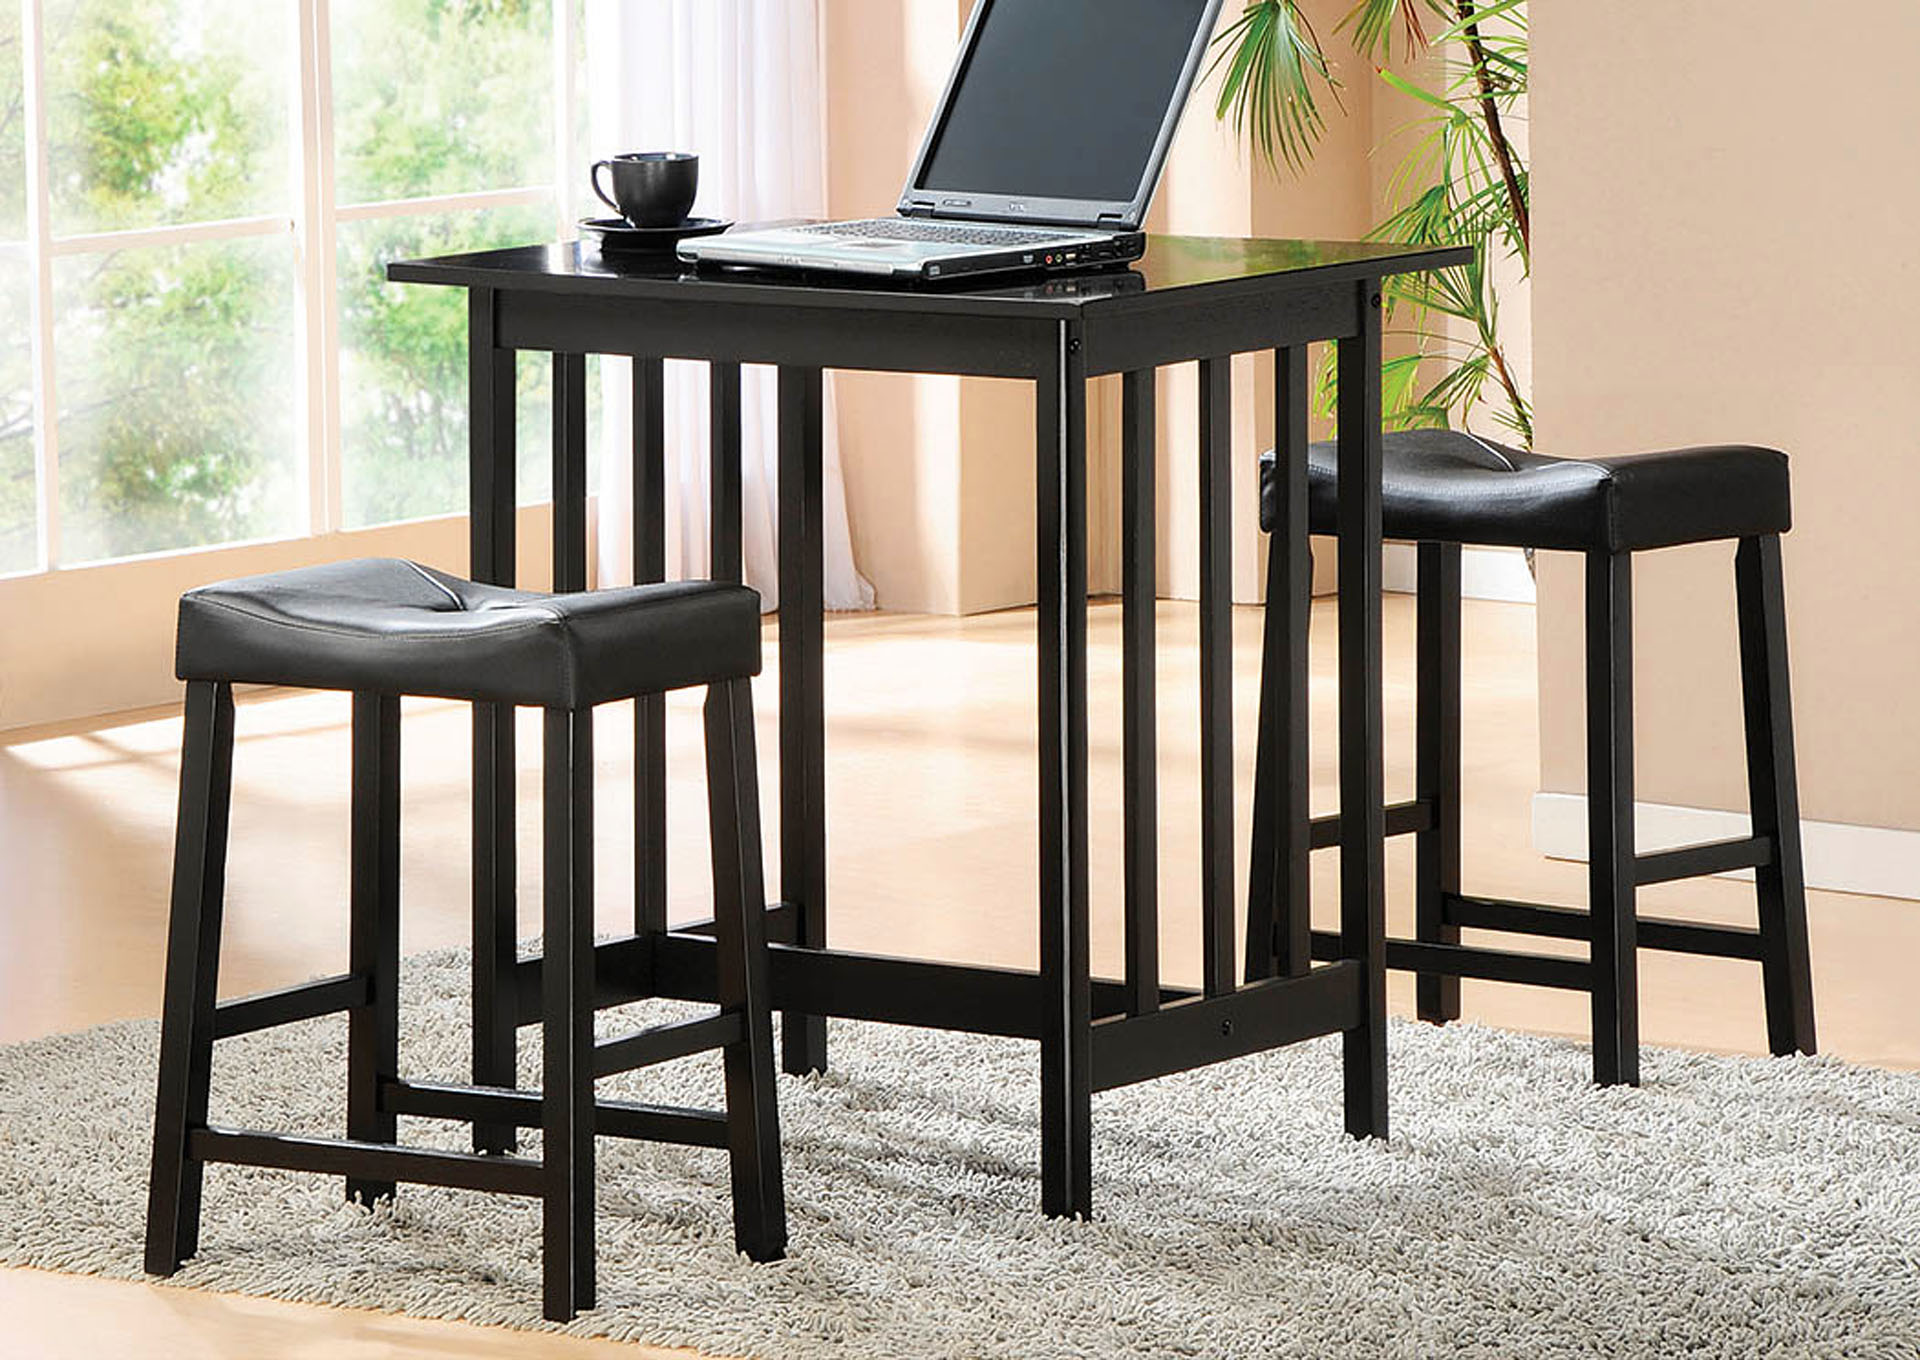 Brilliant Joe Bs Furniture Scottsdale Black 3 Piece Counter Height Alphanode Cool Chair Designs And Ideas Alphanodeonline